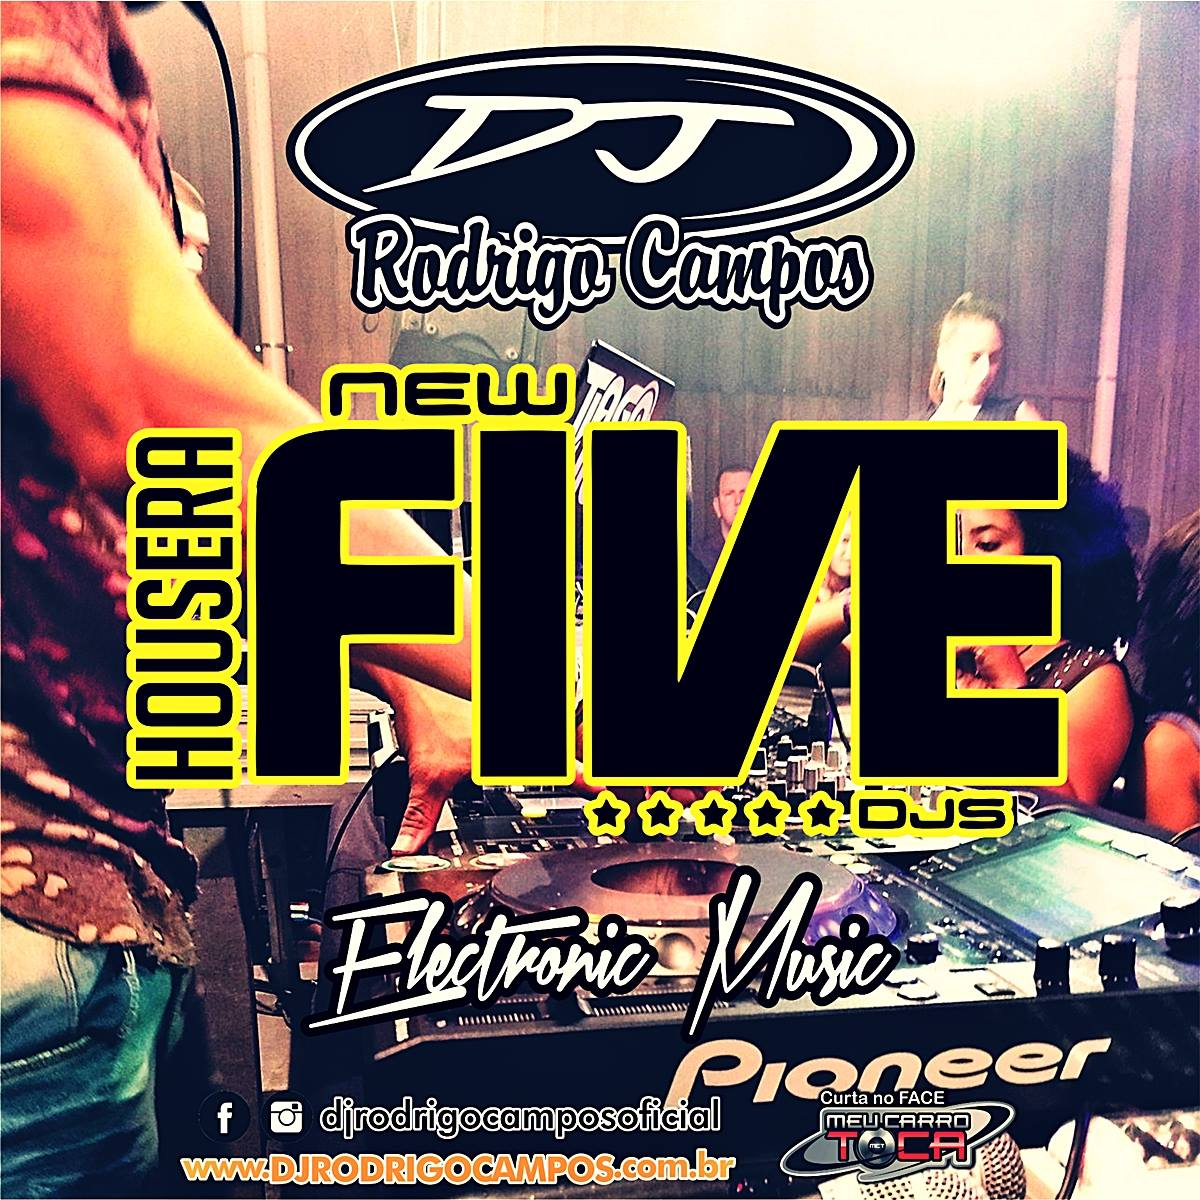 Housera New Five Djs